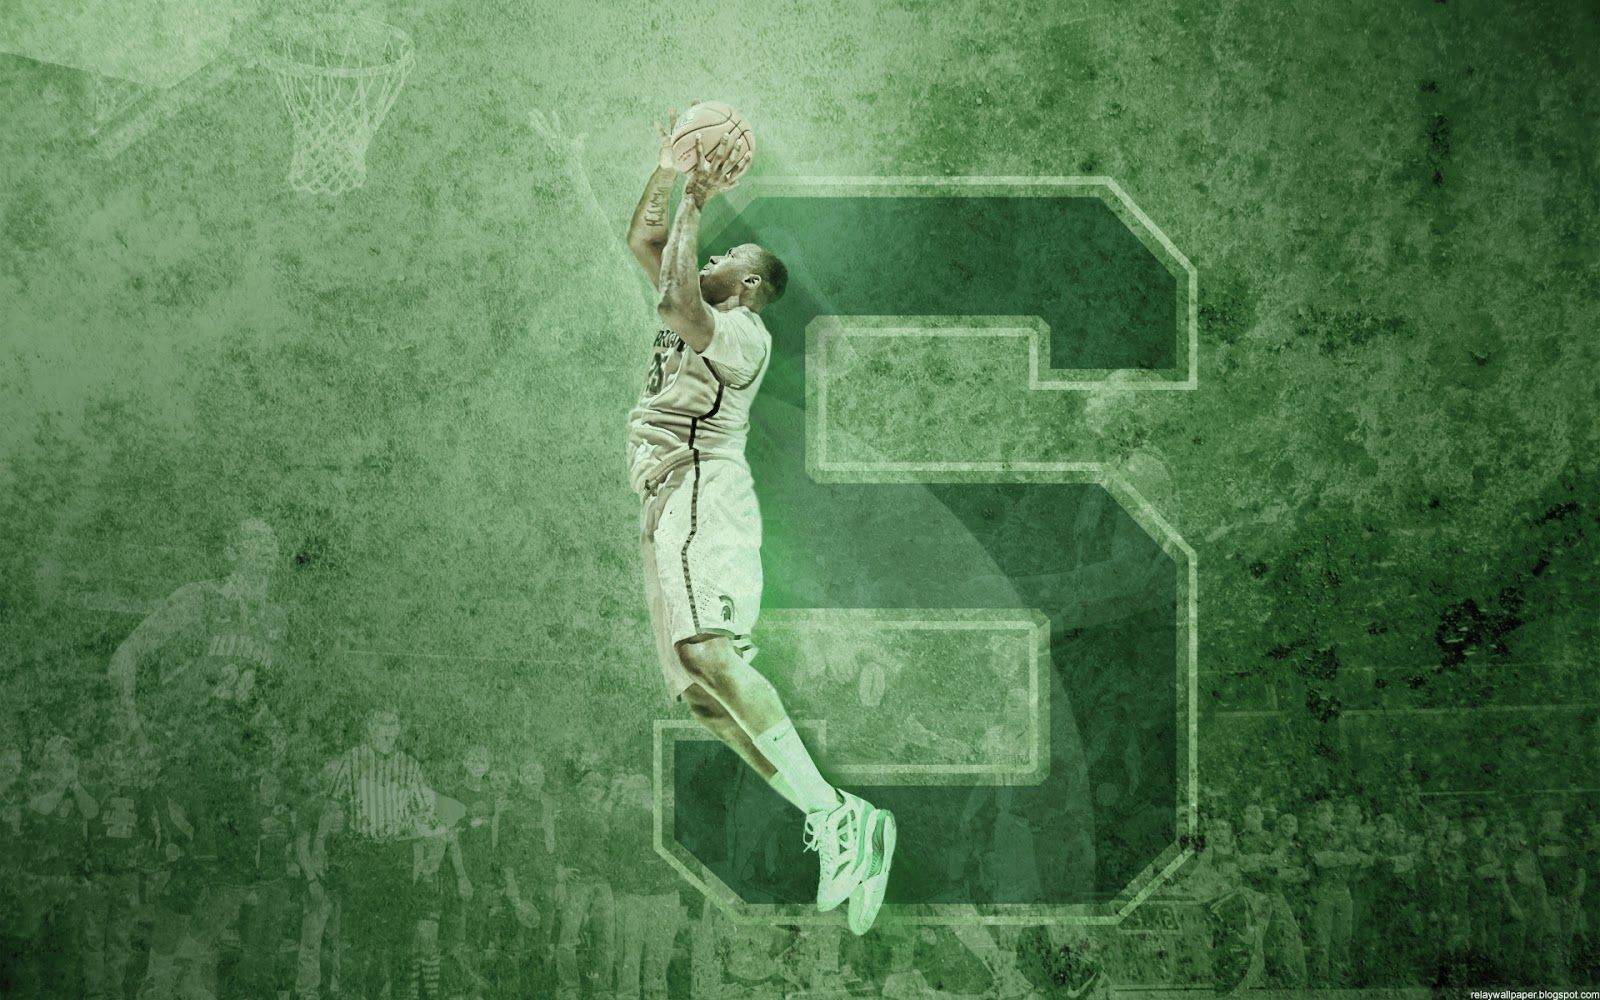 Michigan State Spartans Basketball Wallpapers Michigan State Spartans Basketball Msu Spartans Football Michigan State Spartans